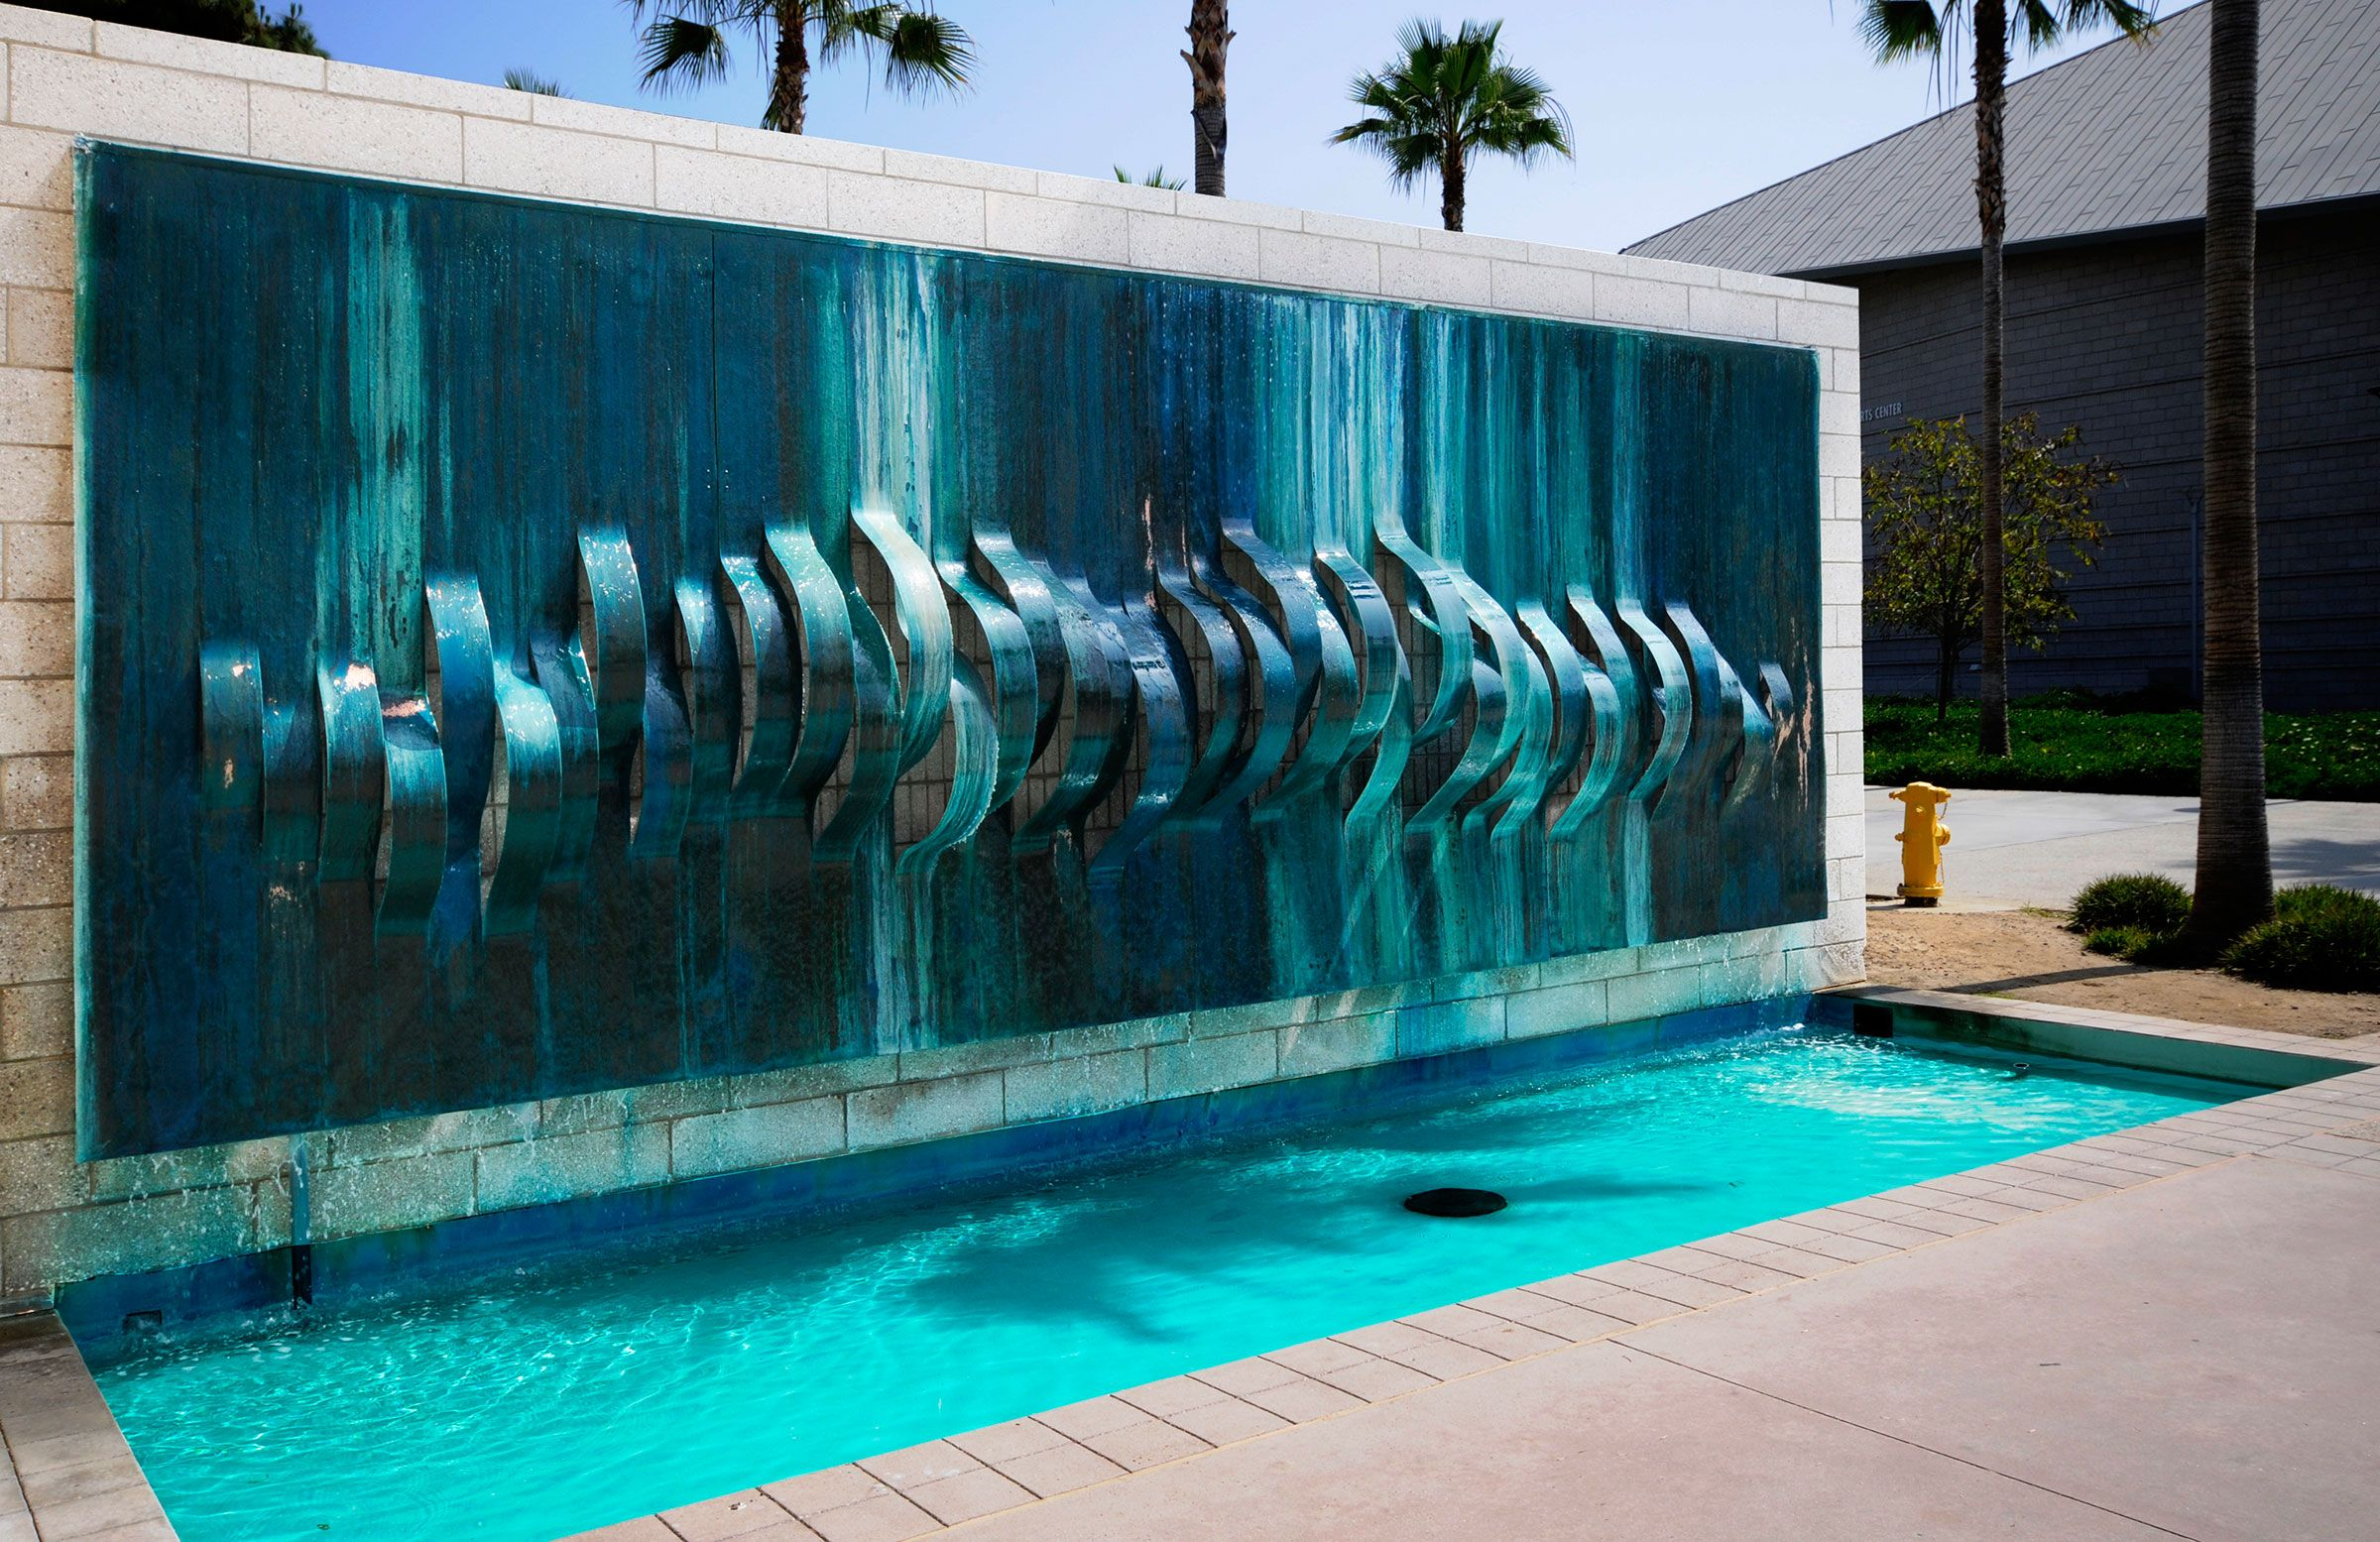 It will be a great options for Outdoor Water Wall Design ...